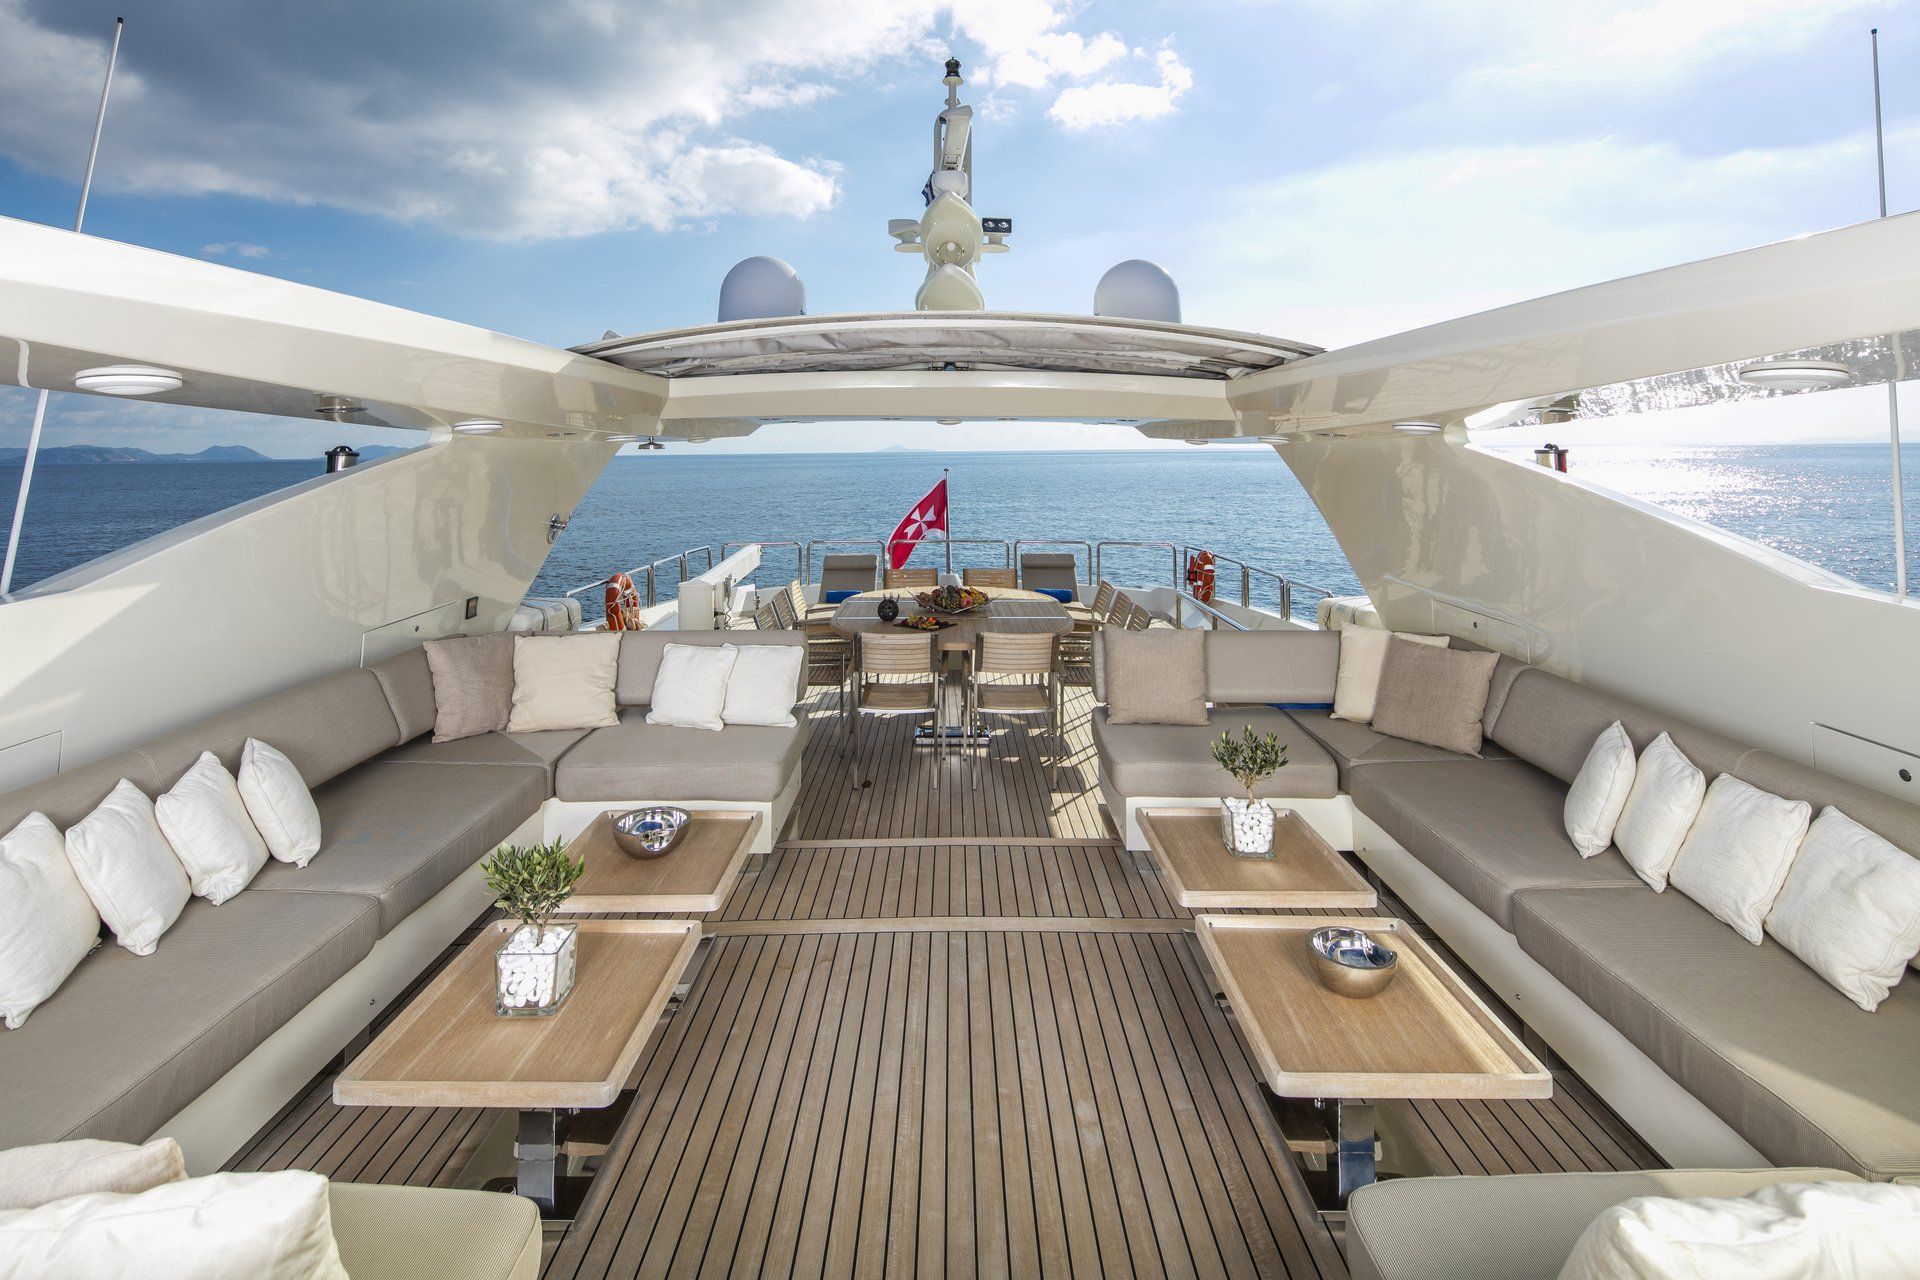 M/Y RINI yacht for charter deck lounge